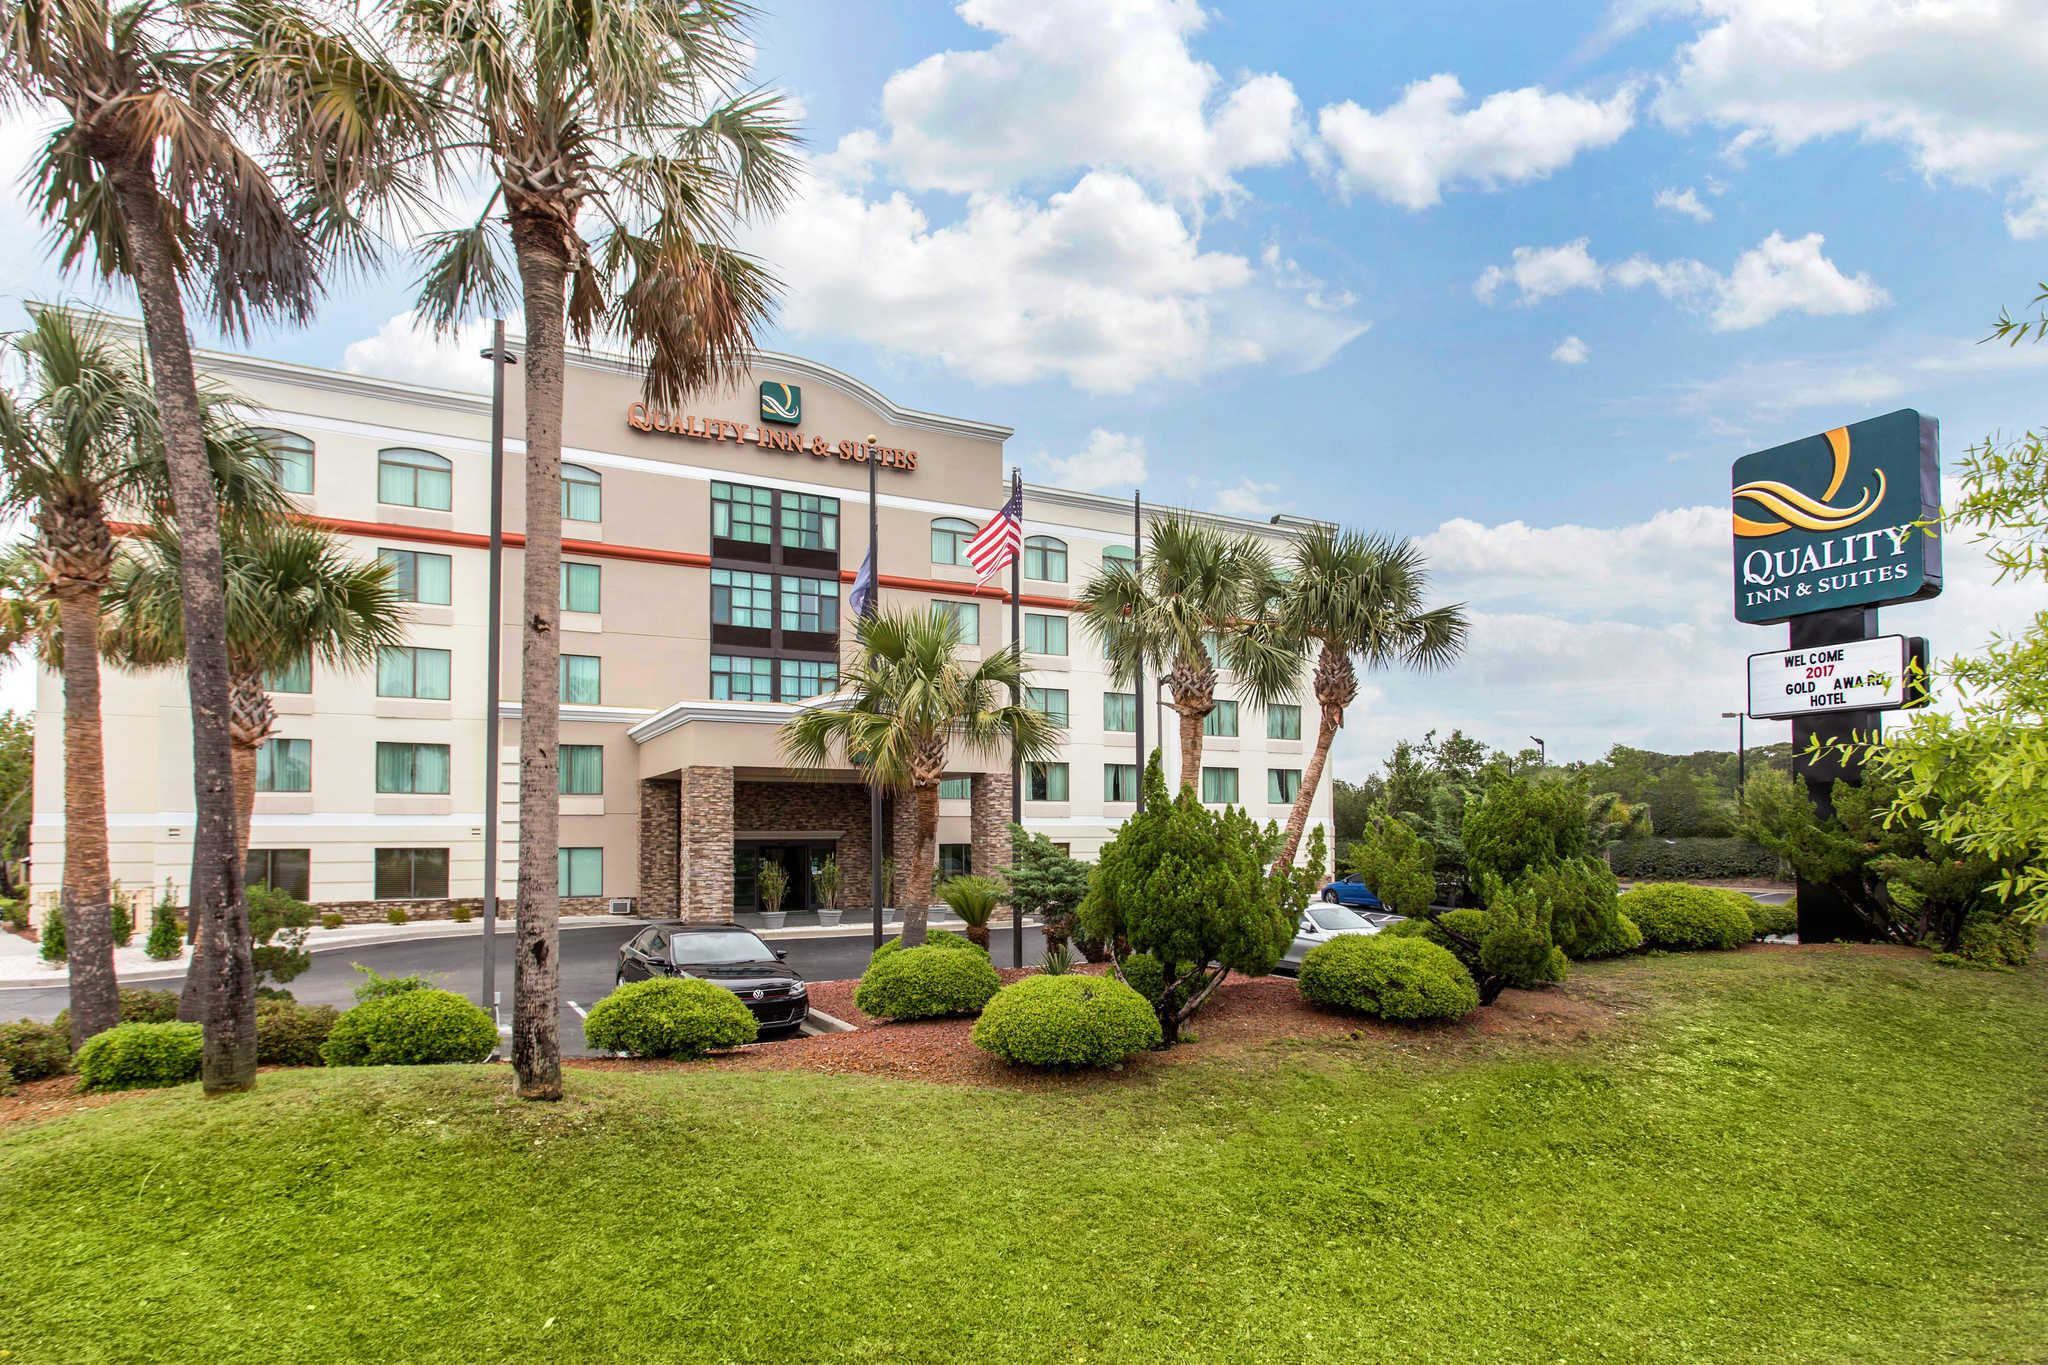 Quality Inn And Suites Myrtle Beach Sc